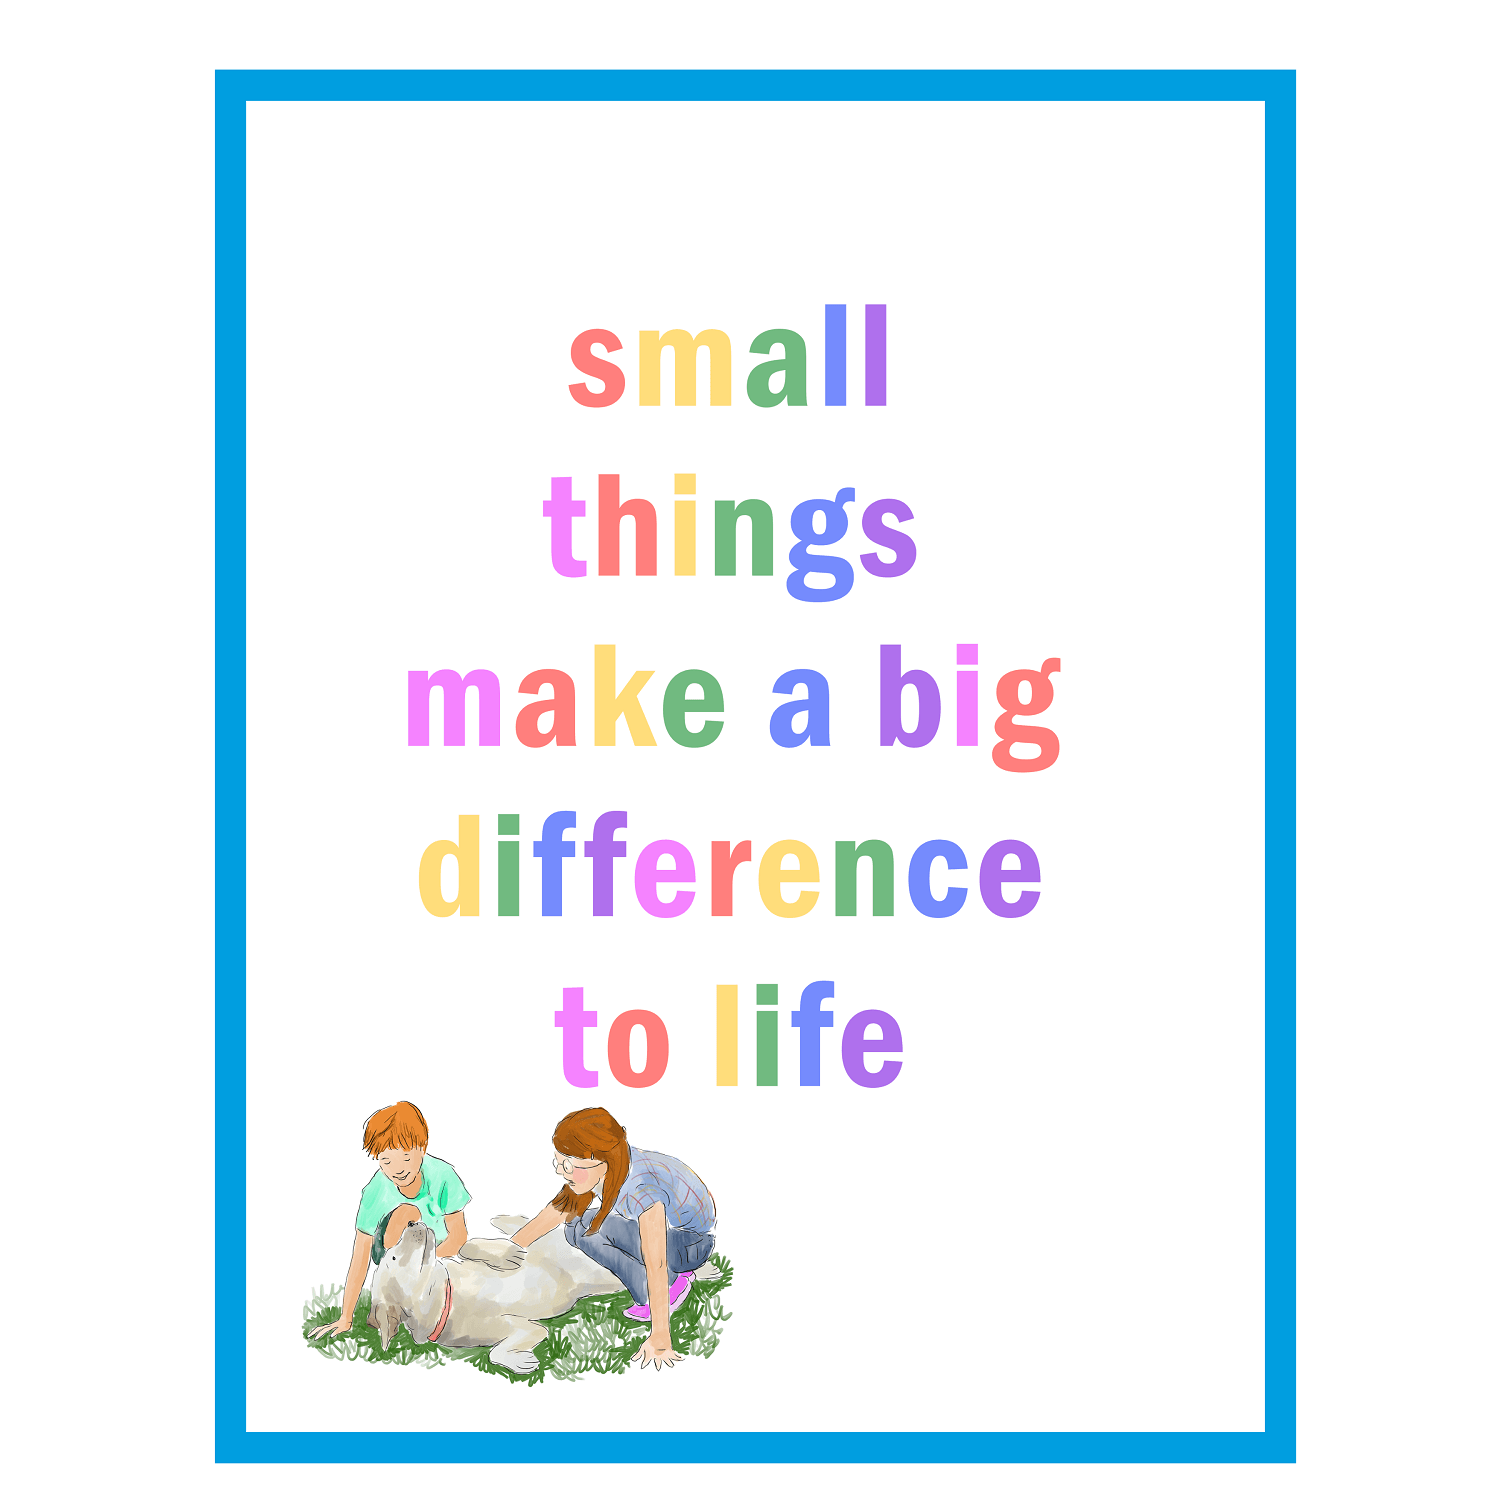 Children's Bedroom & Nursery Art Print – 'Small things make a big difference to life' Kind Shop